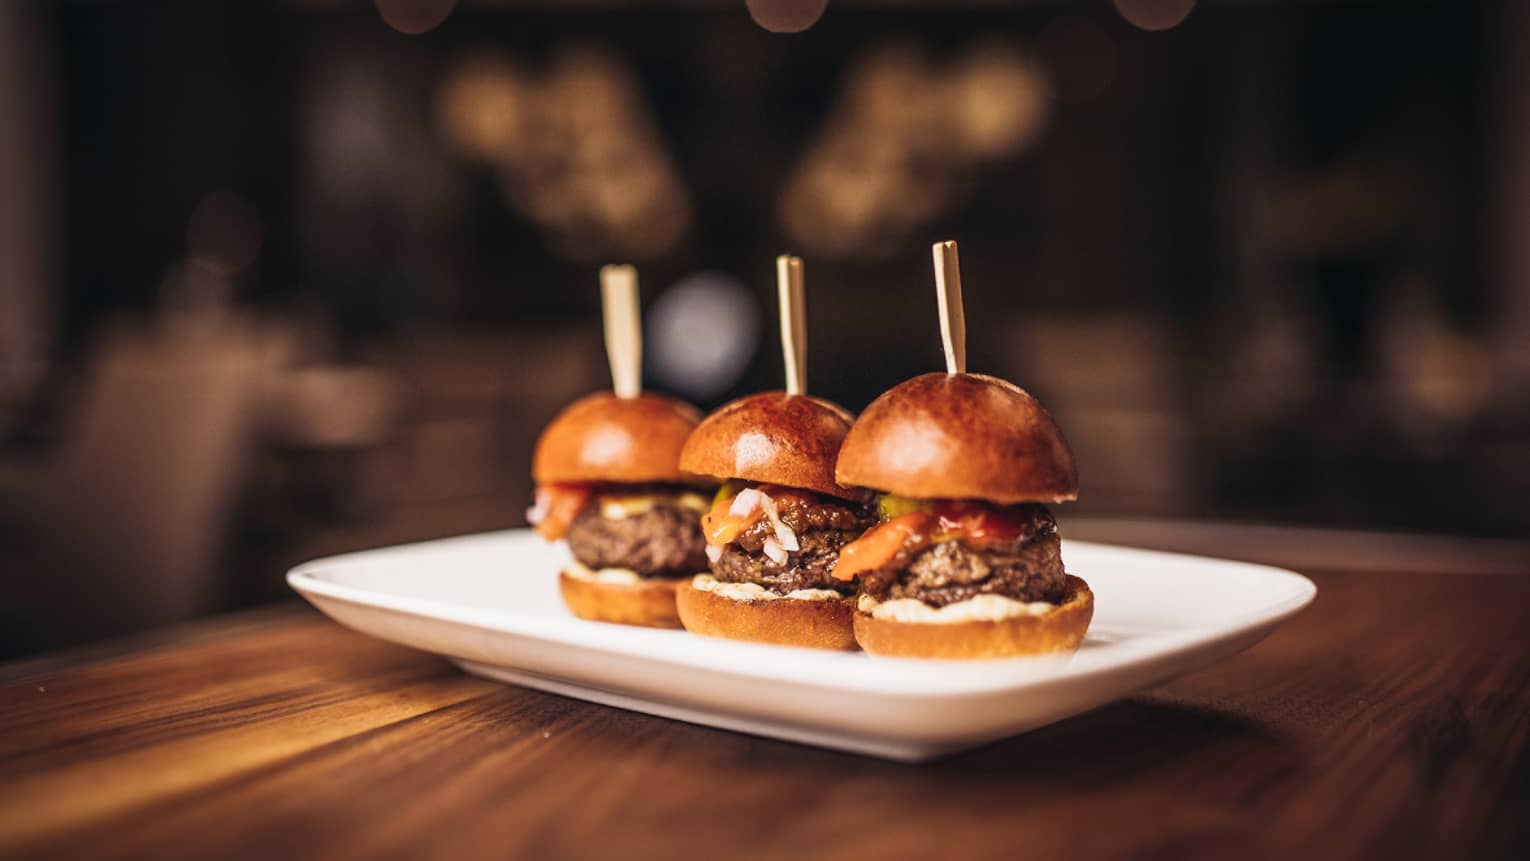 Trio of thick burgers on artisanal buns with wood sticks on white platter